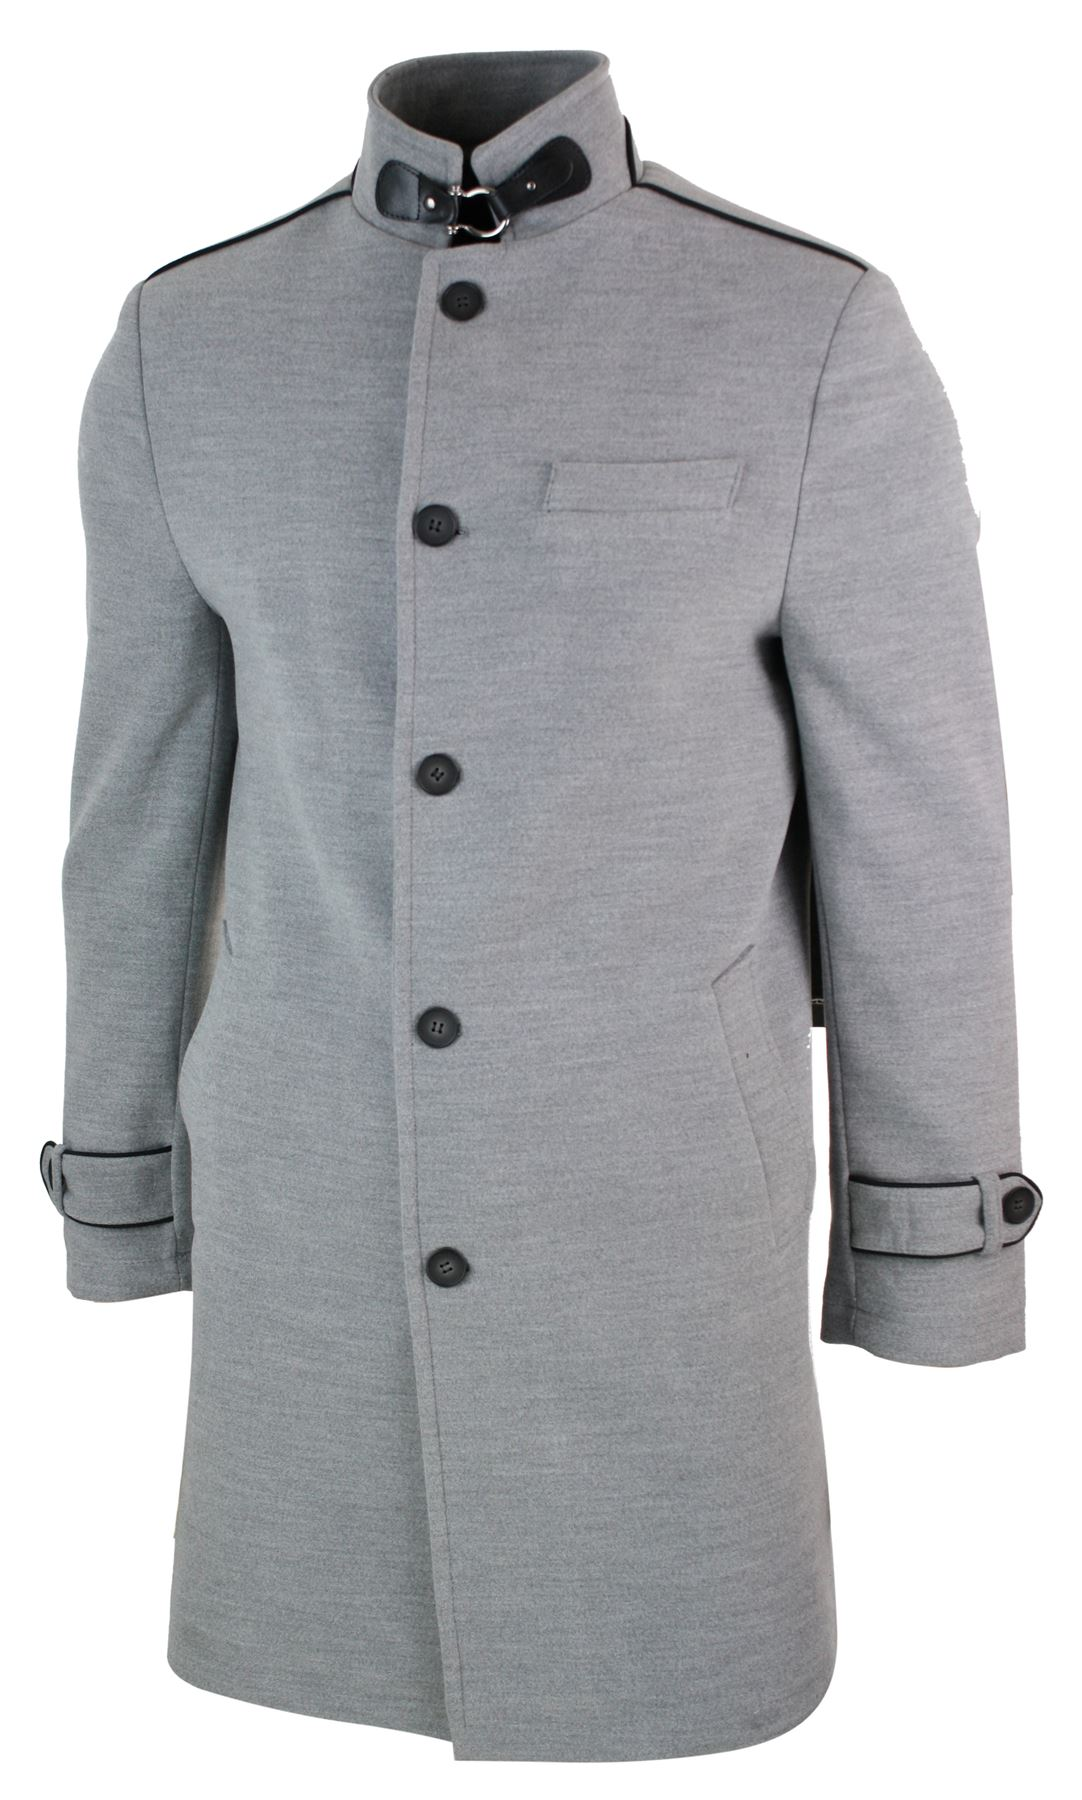 veste longue manteau 3 4 col mao montant d contract chic hiver homme ebay. Black Bedroom Furniture Sets. Home Design Ideas